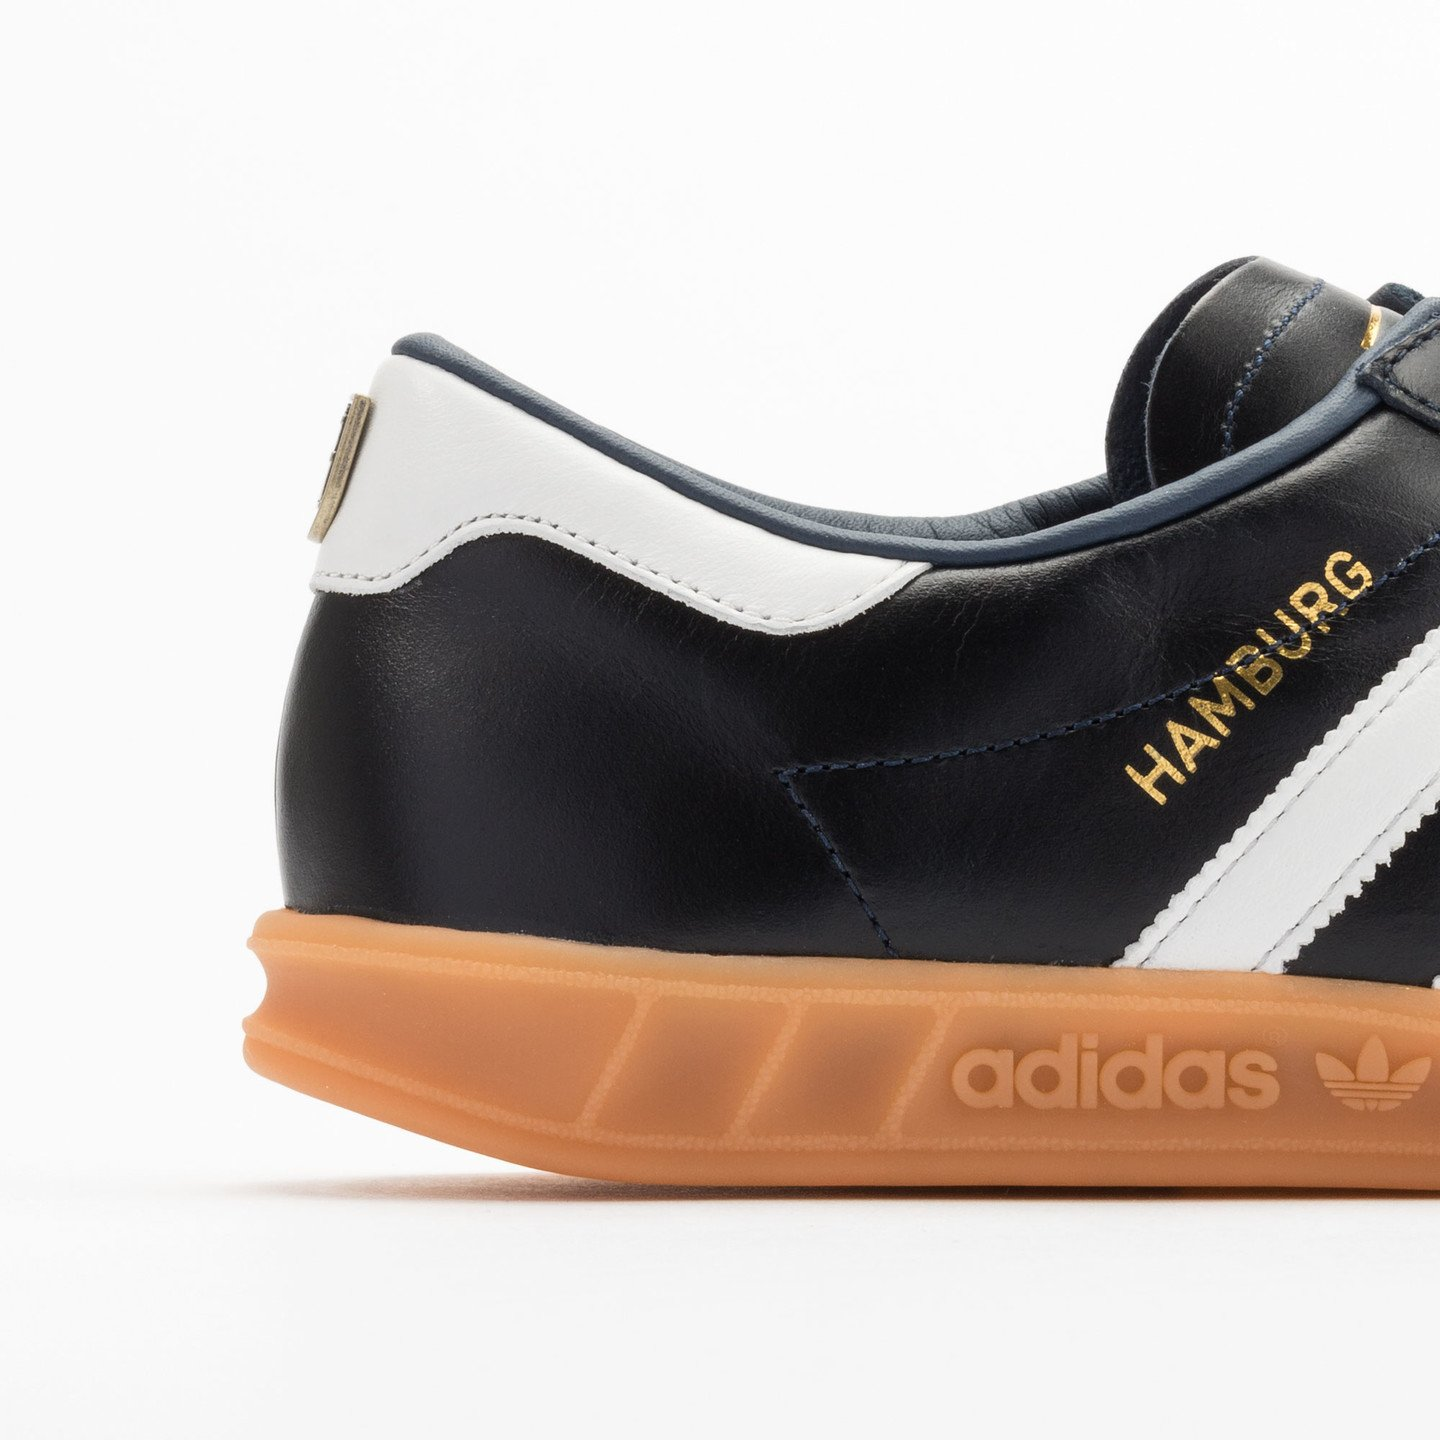 Adidas Hamburg - Made in Germany Navy / White / Gold / Gum S31602-42